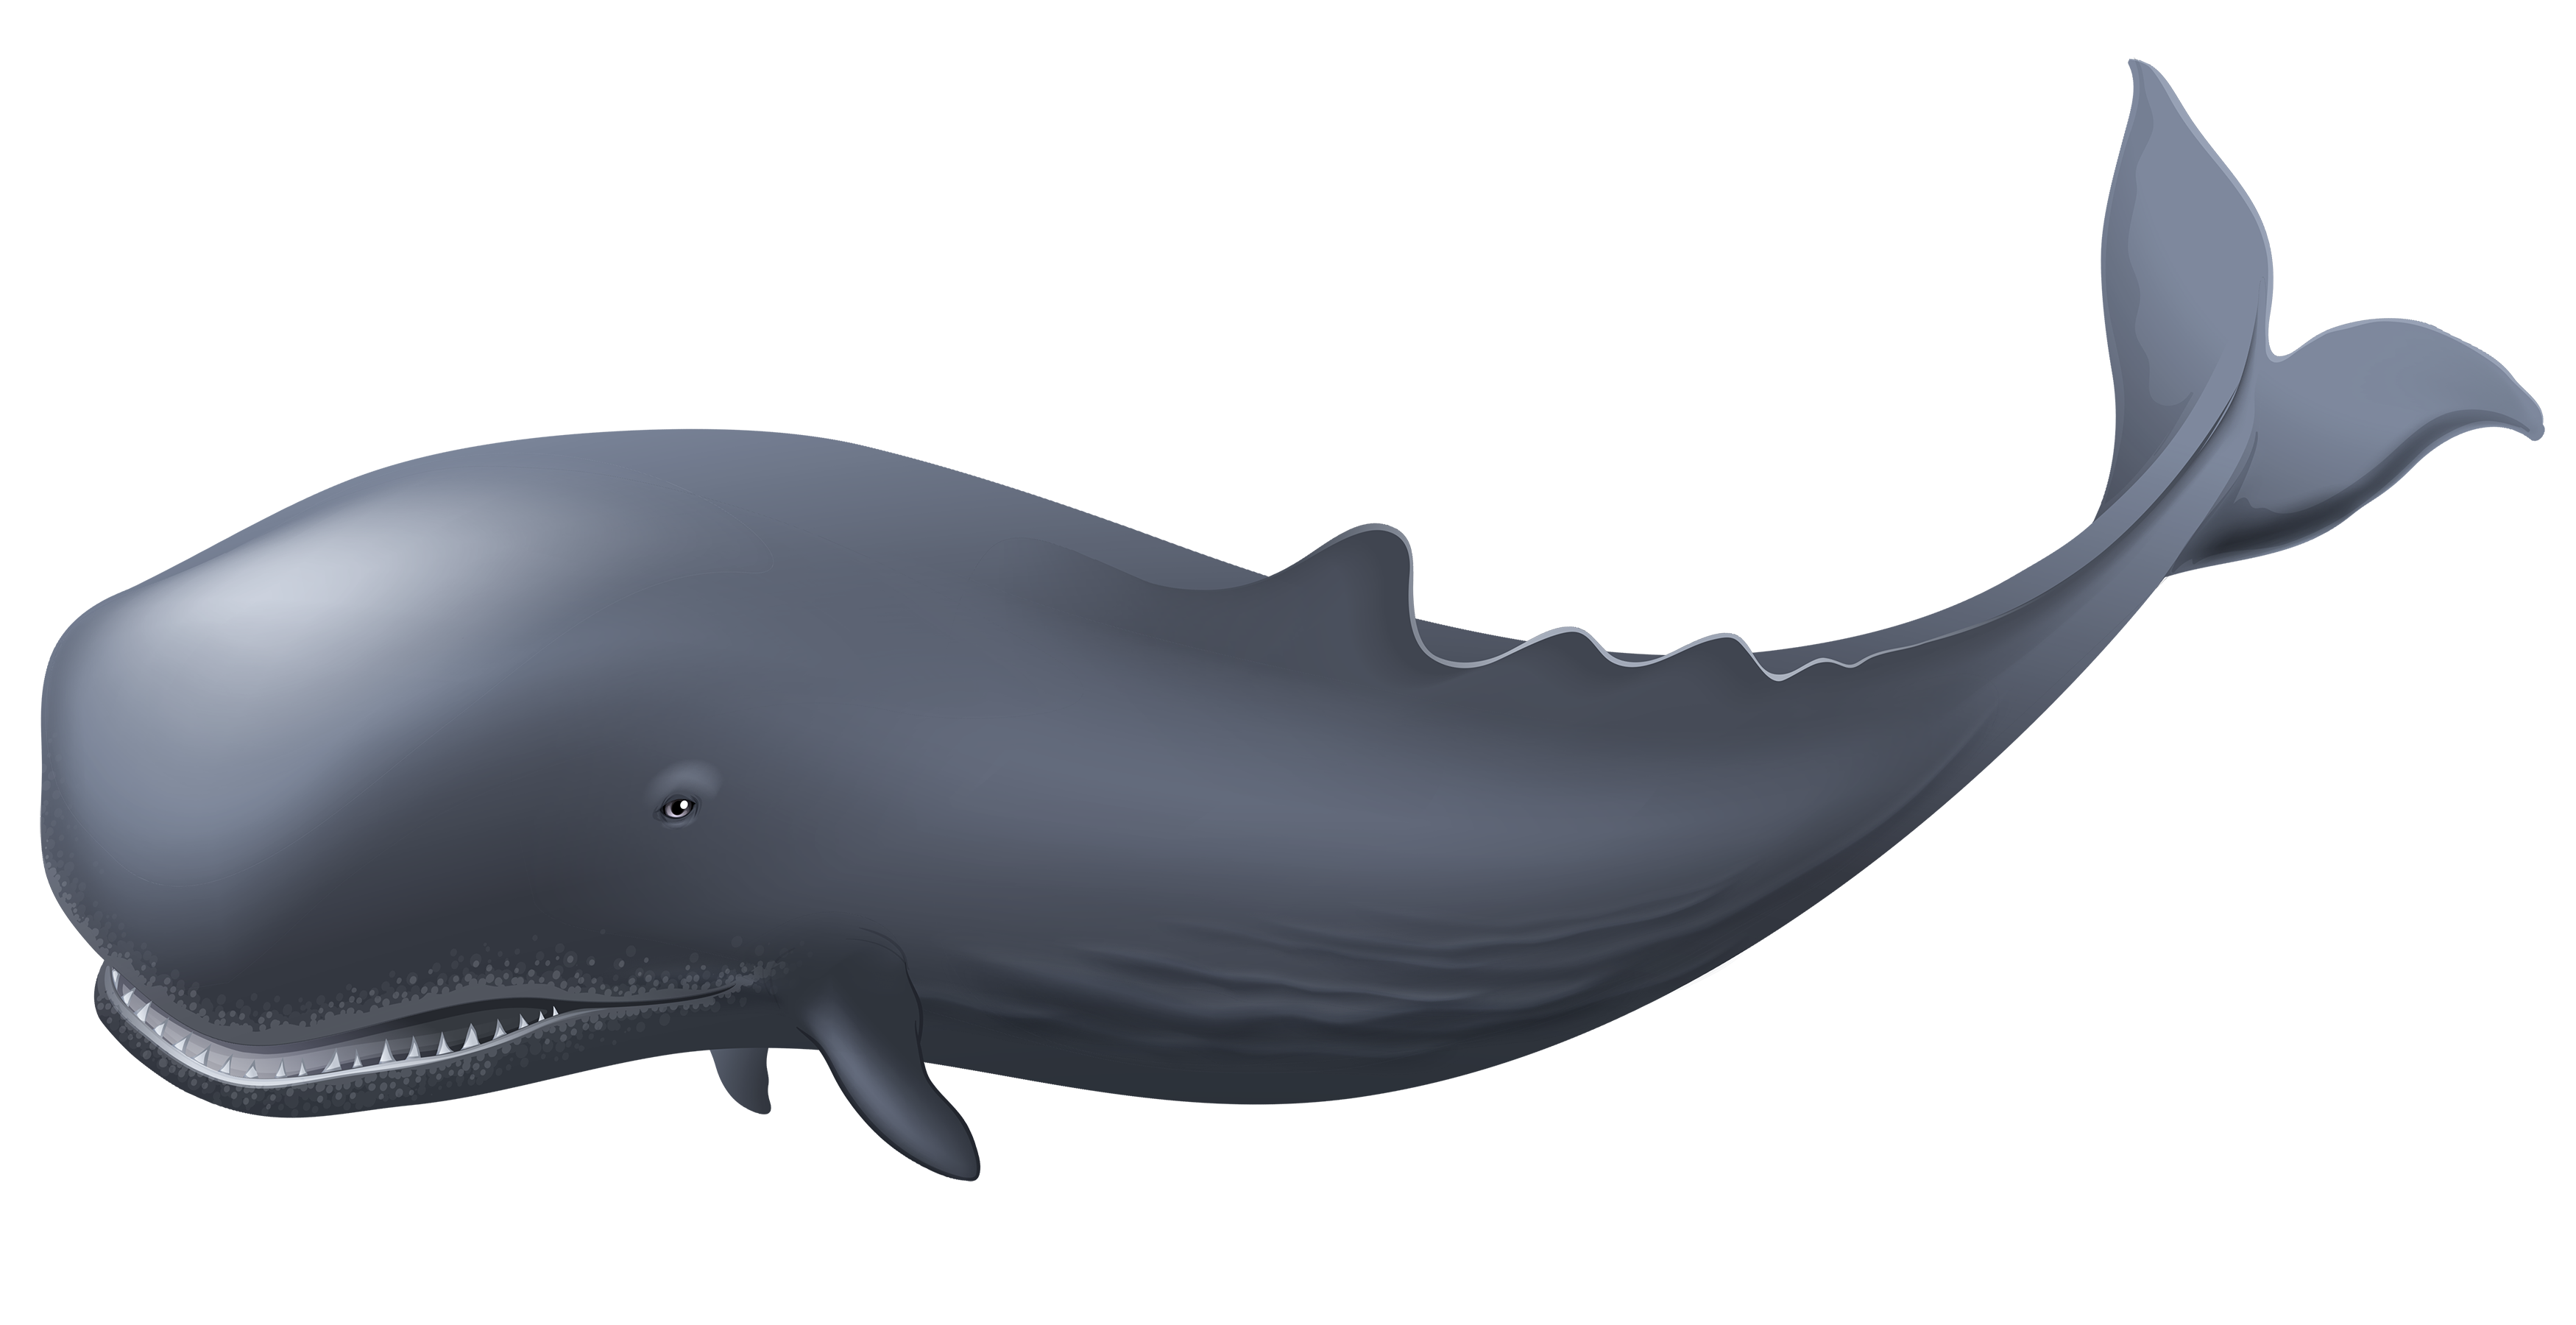 Whale png clipart jpg transparent Whale PNG Clipart - Best WEB Clipart jpg transparent